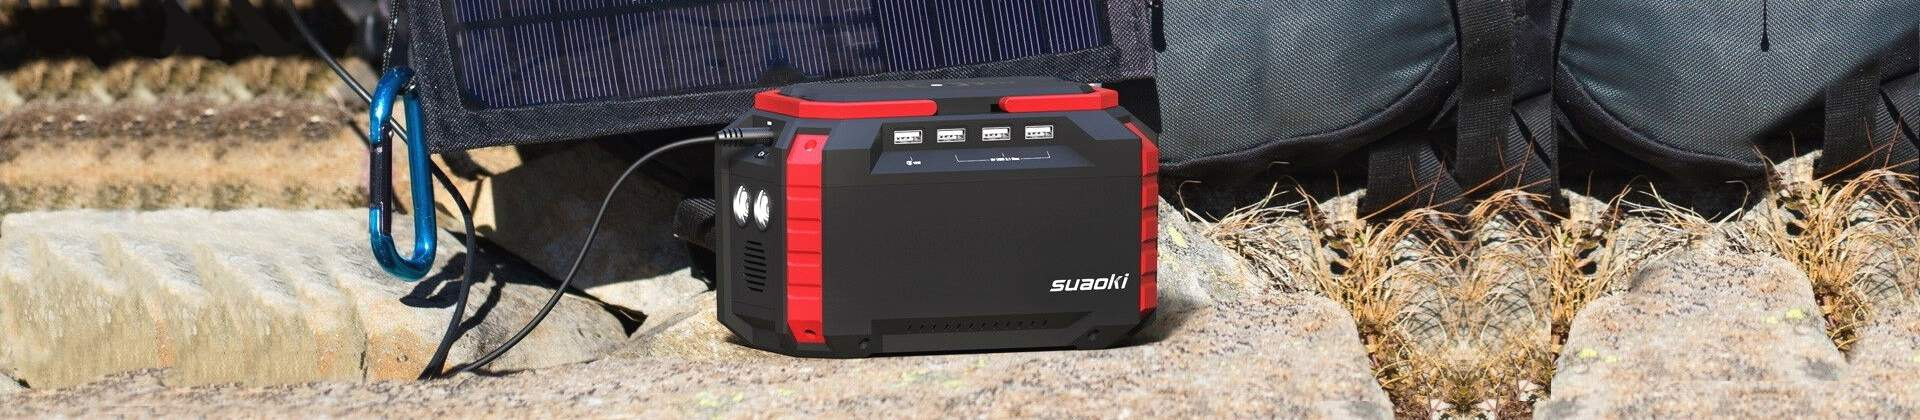 Best Portable Power Supply Models